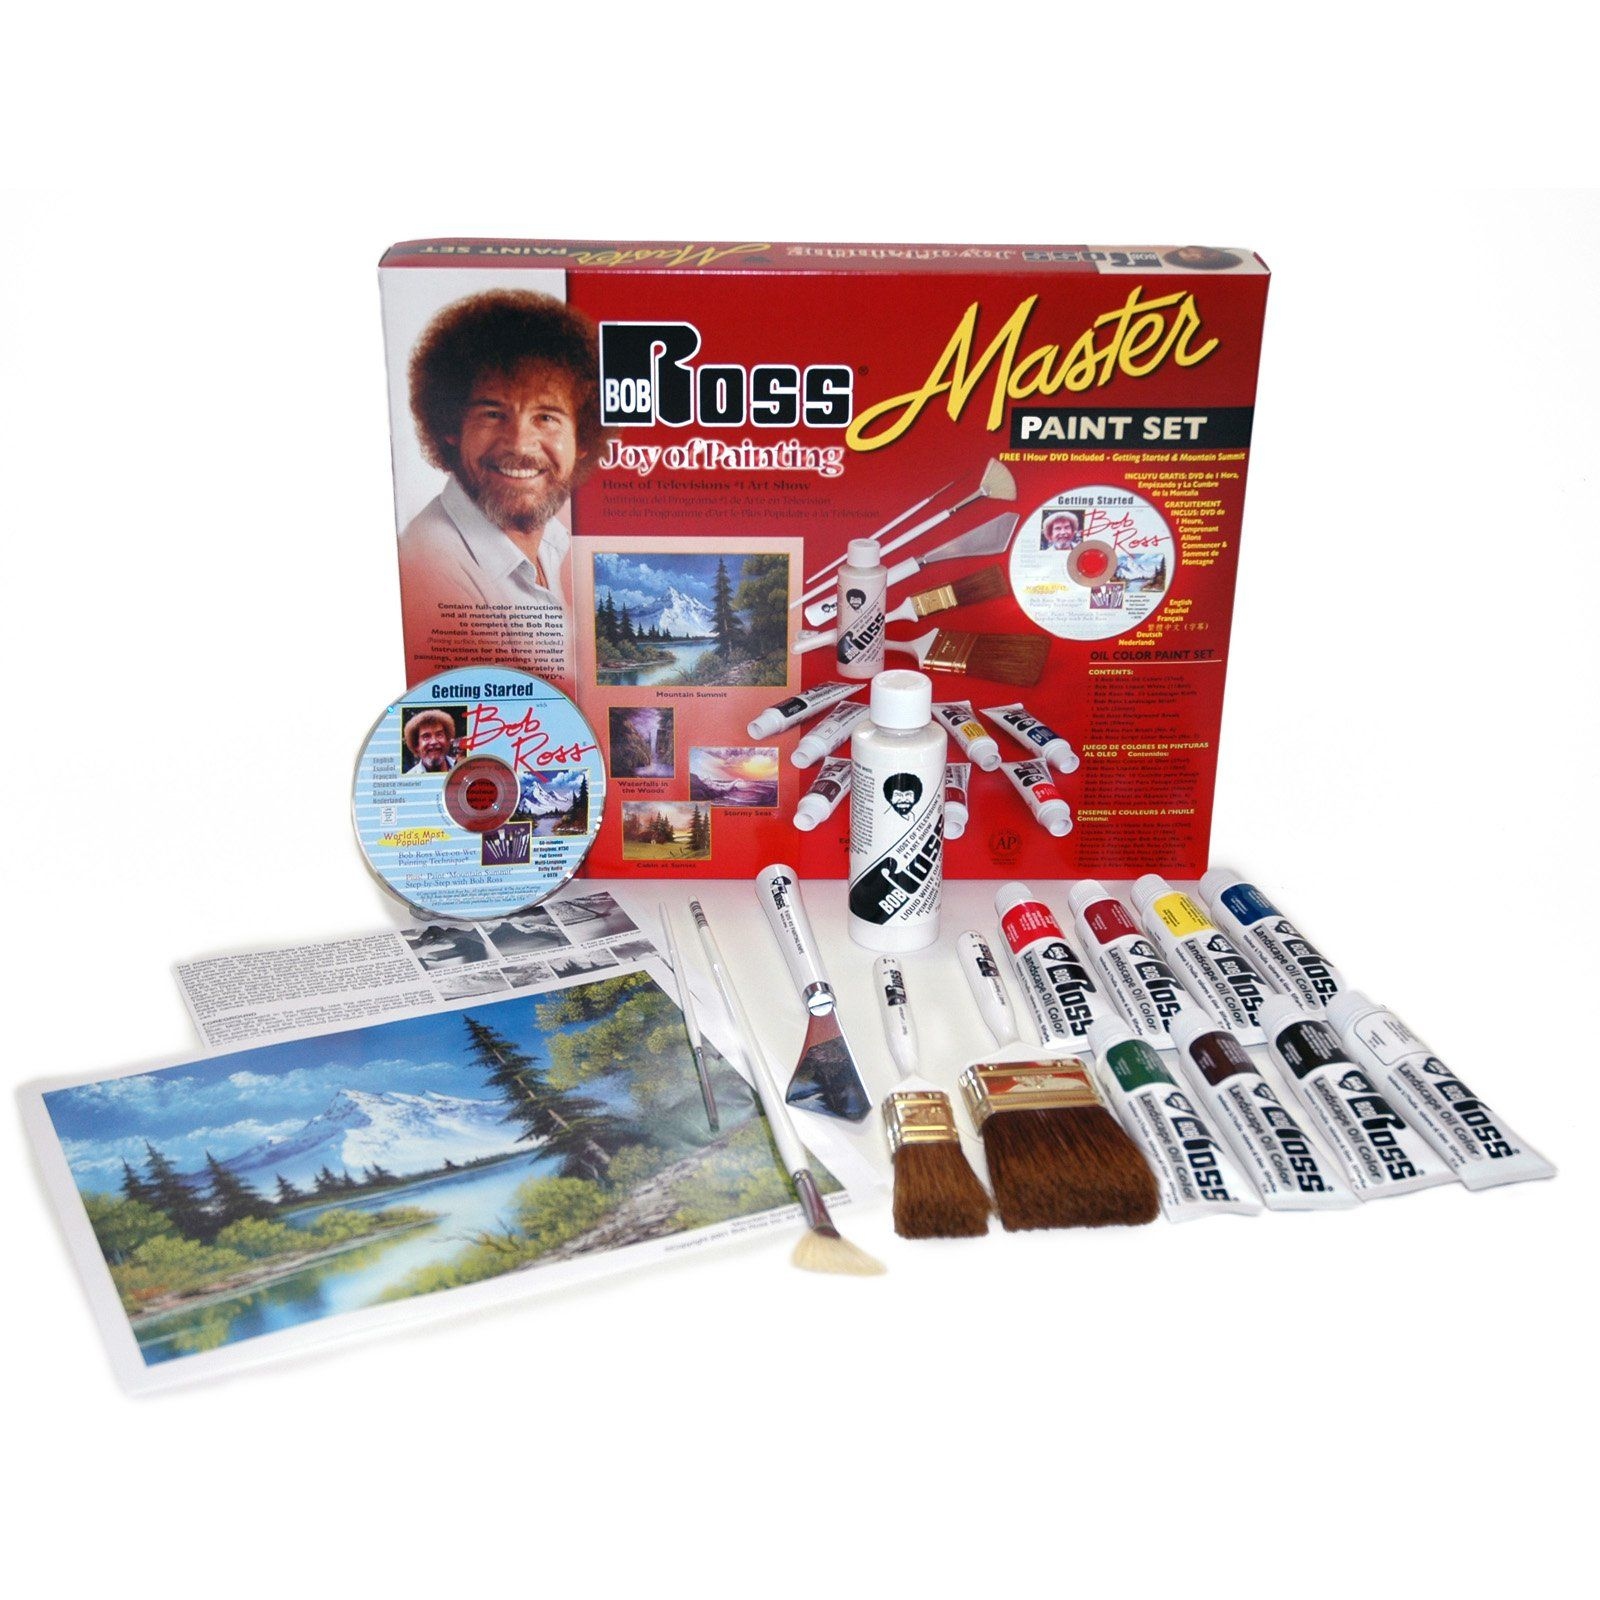 Bob Ross Master Paint Set with 1 Hour Dvd - Set contains ...